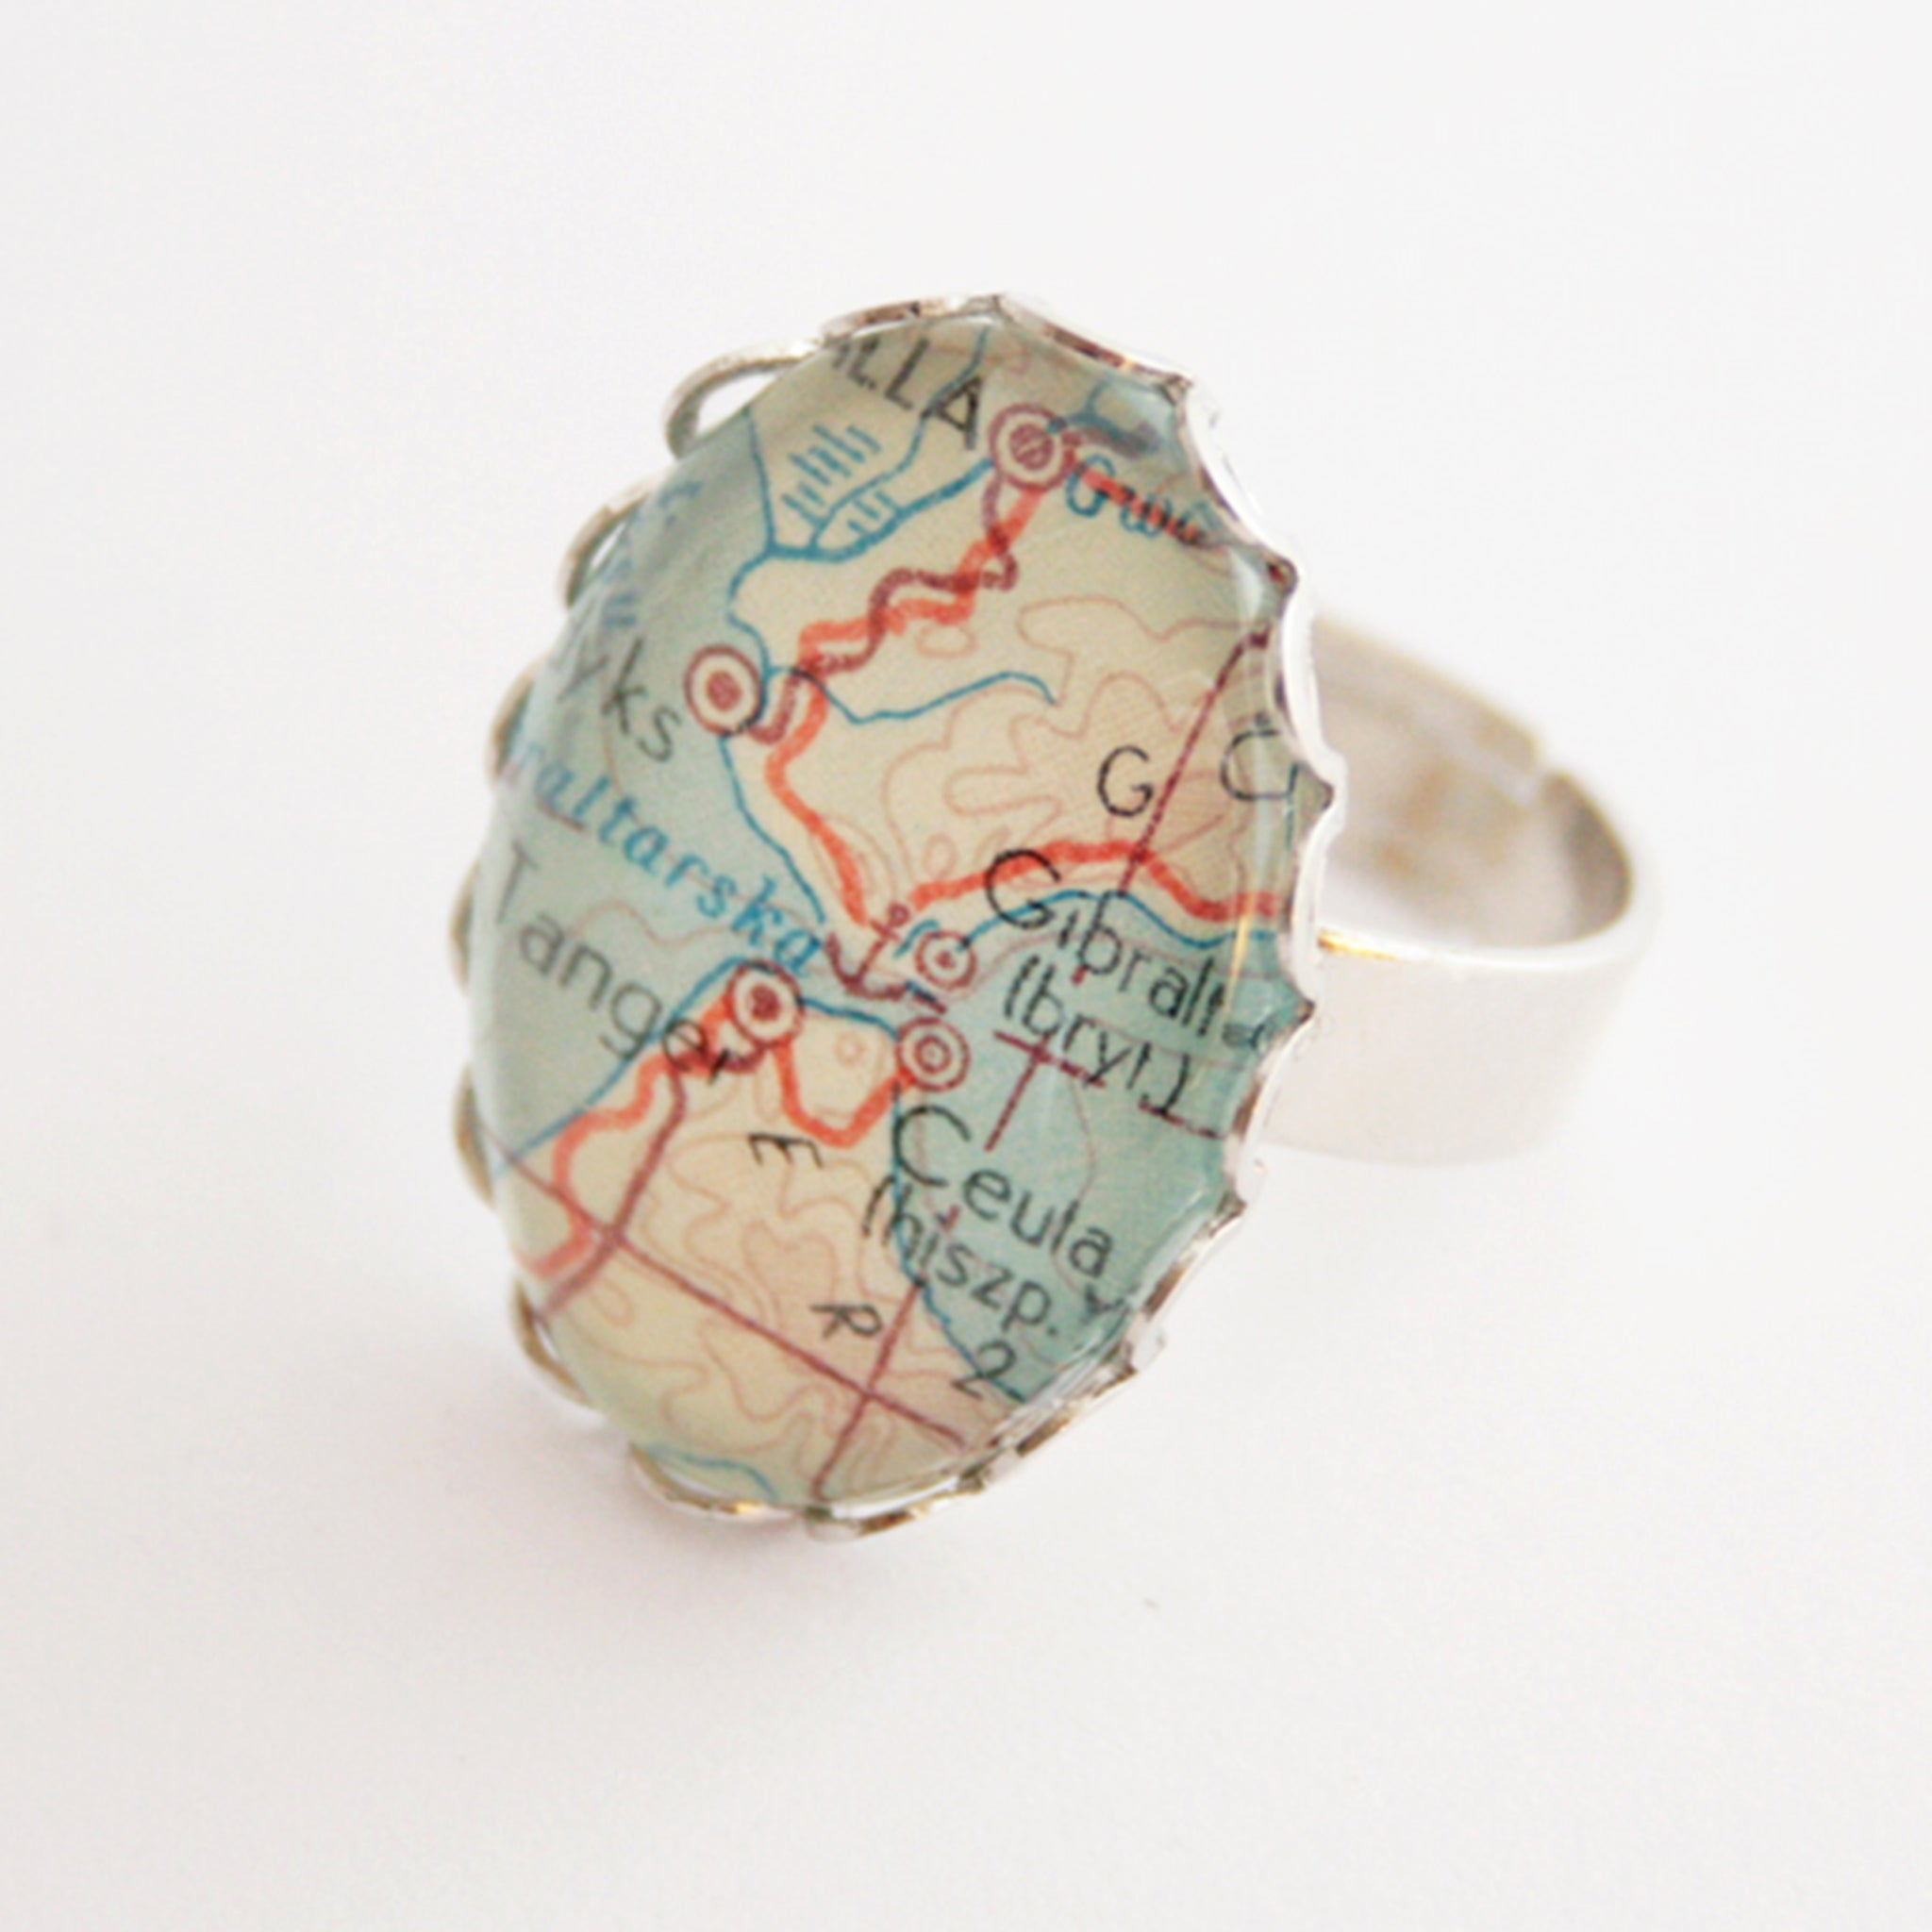 Oval silver ring personalised featuring map of Gibraltar